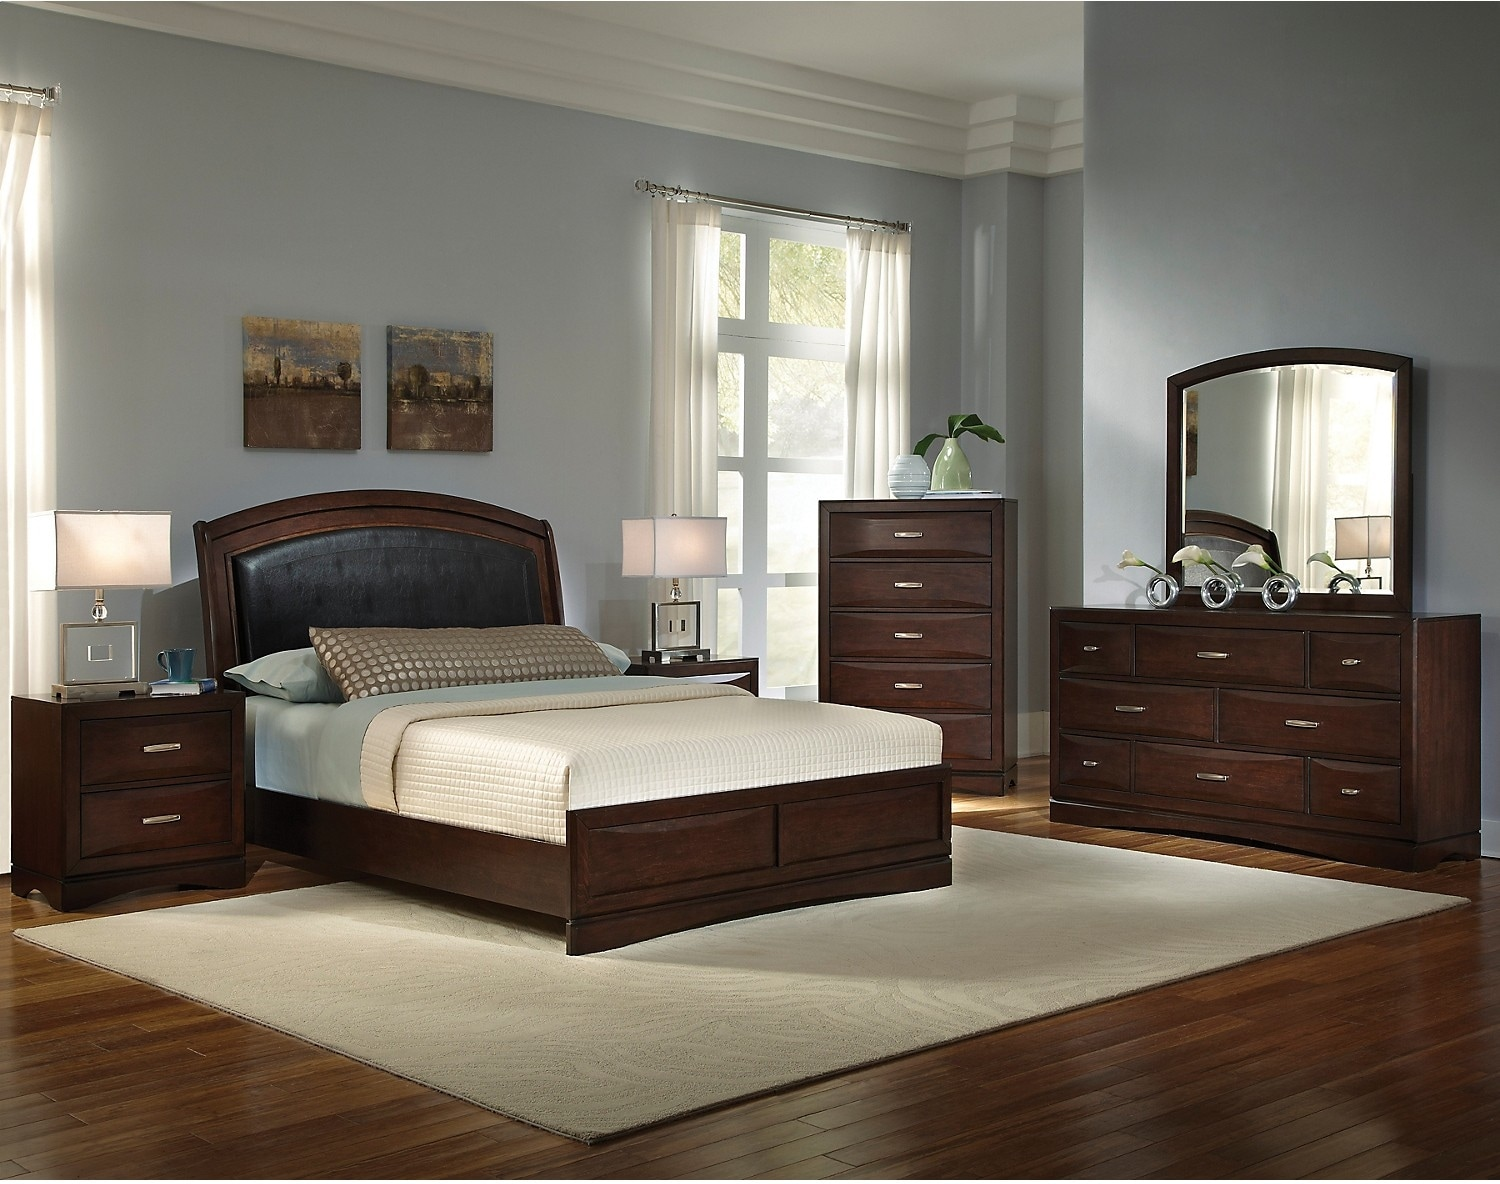 Beverly 8 piece queen bedroom set the brick - Furniture picture ...